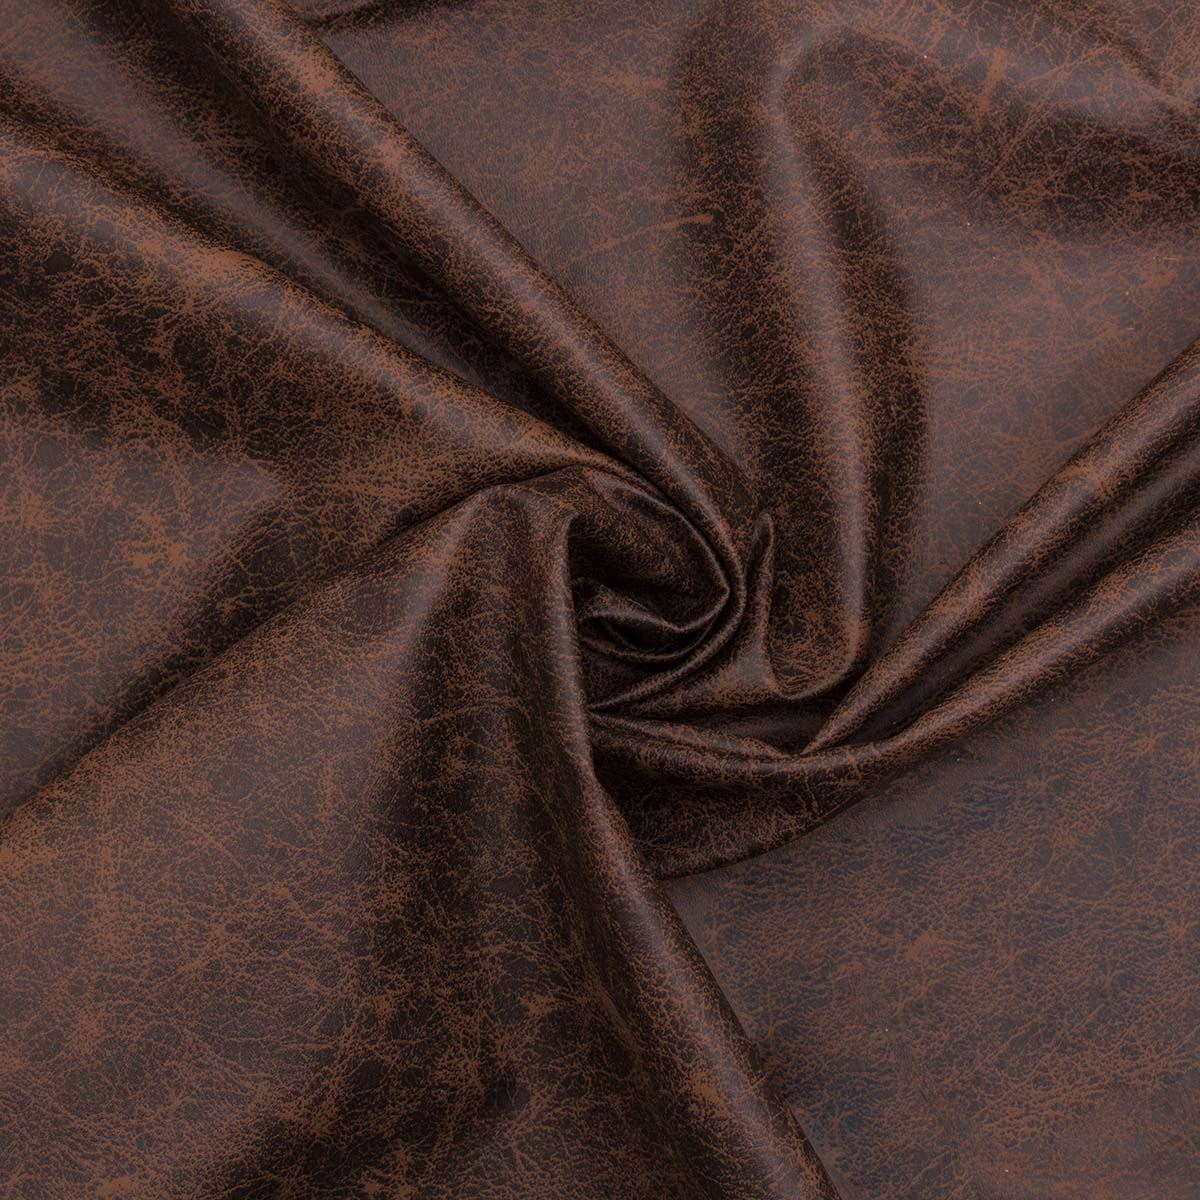 Recycled Leather Genuine Distressed Chocolate Aged Brown